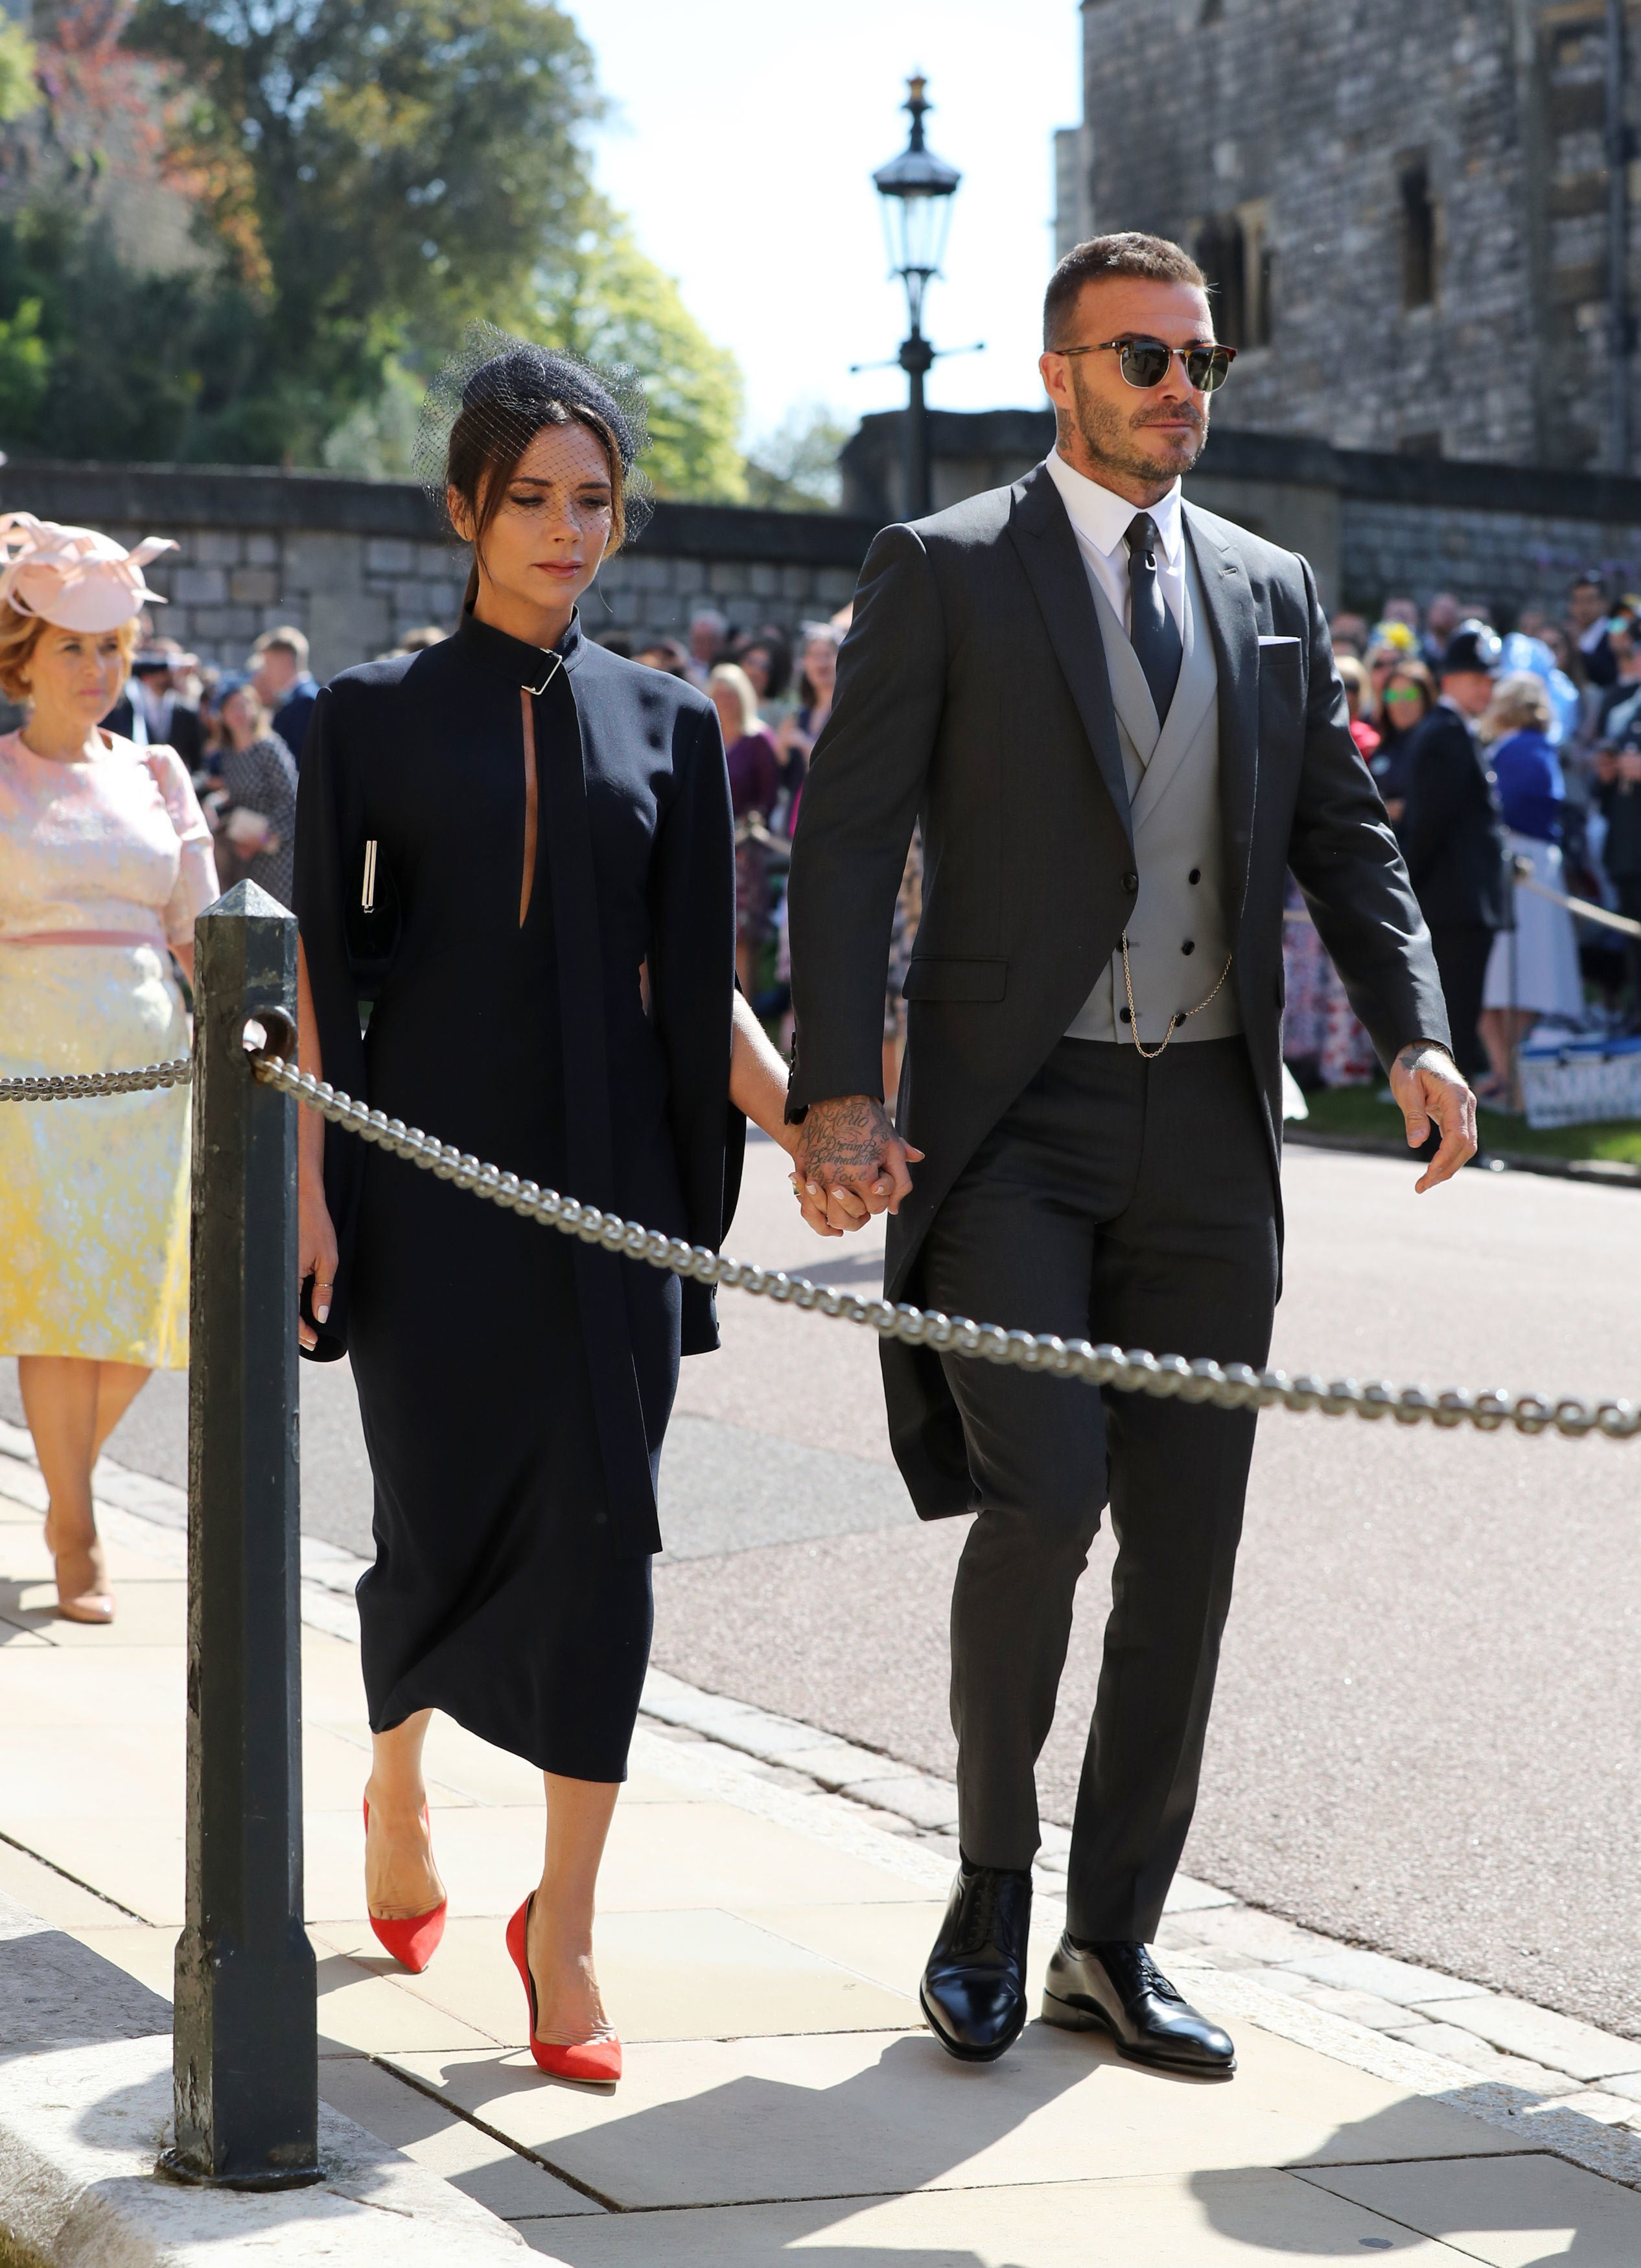 388daf0bd8a David and Victoria Beckham Make Glamorous Arrival at Royal Wedding ...